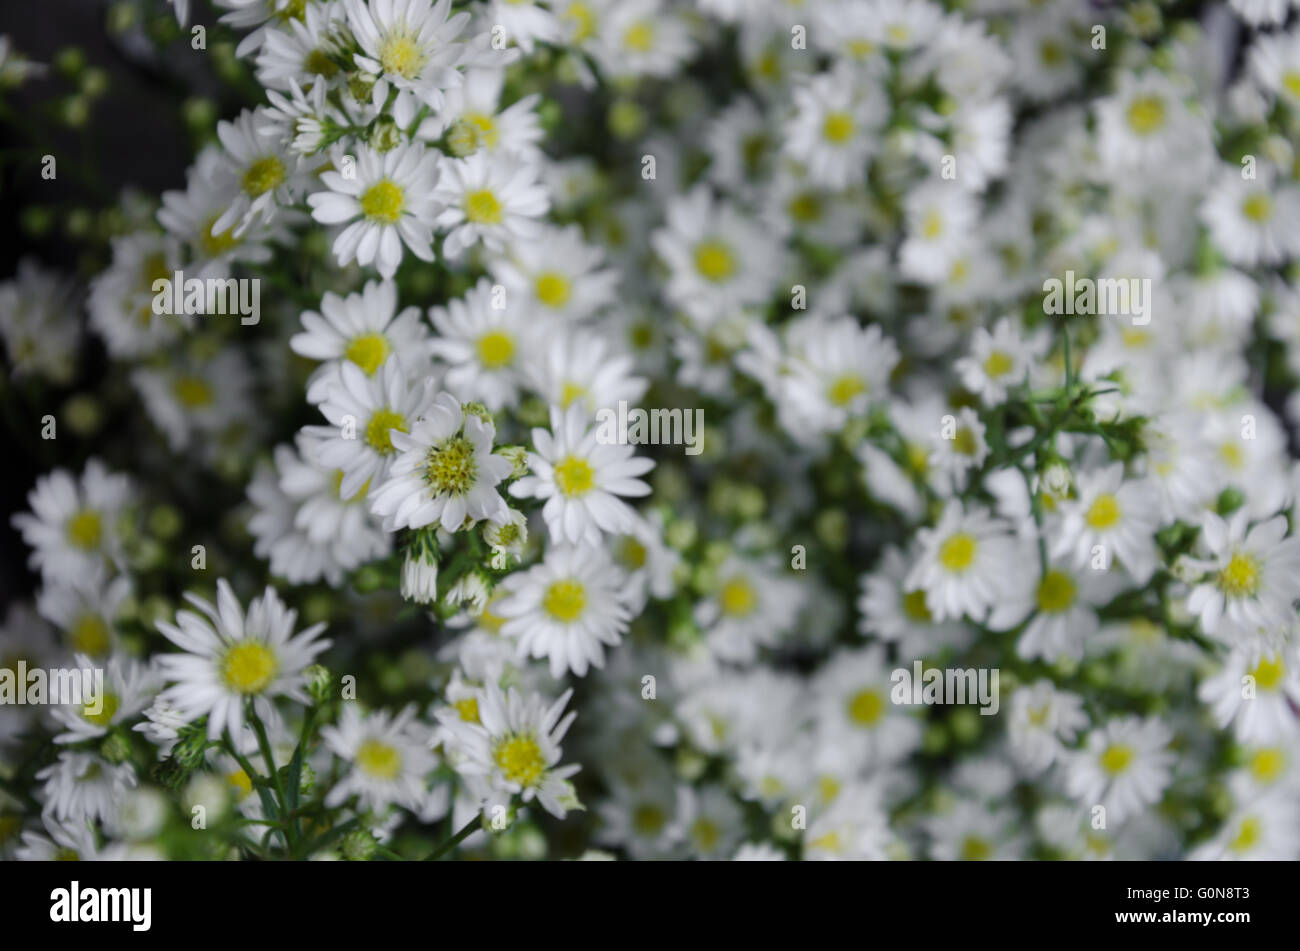 White aster flowers in blurry background stock photo 103730147 alamy white aster flowers in blurry background mightylinksfo